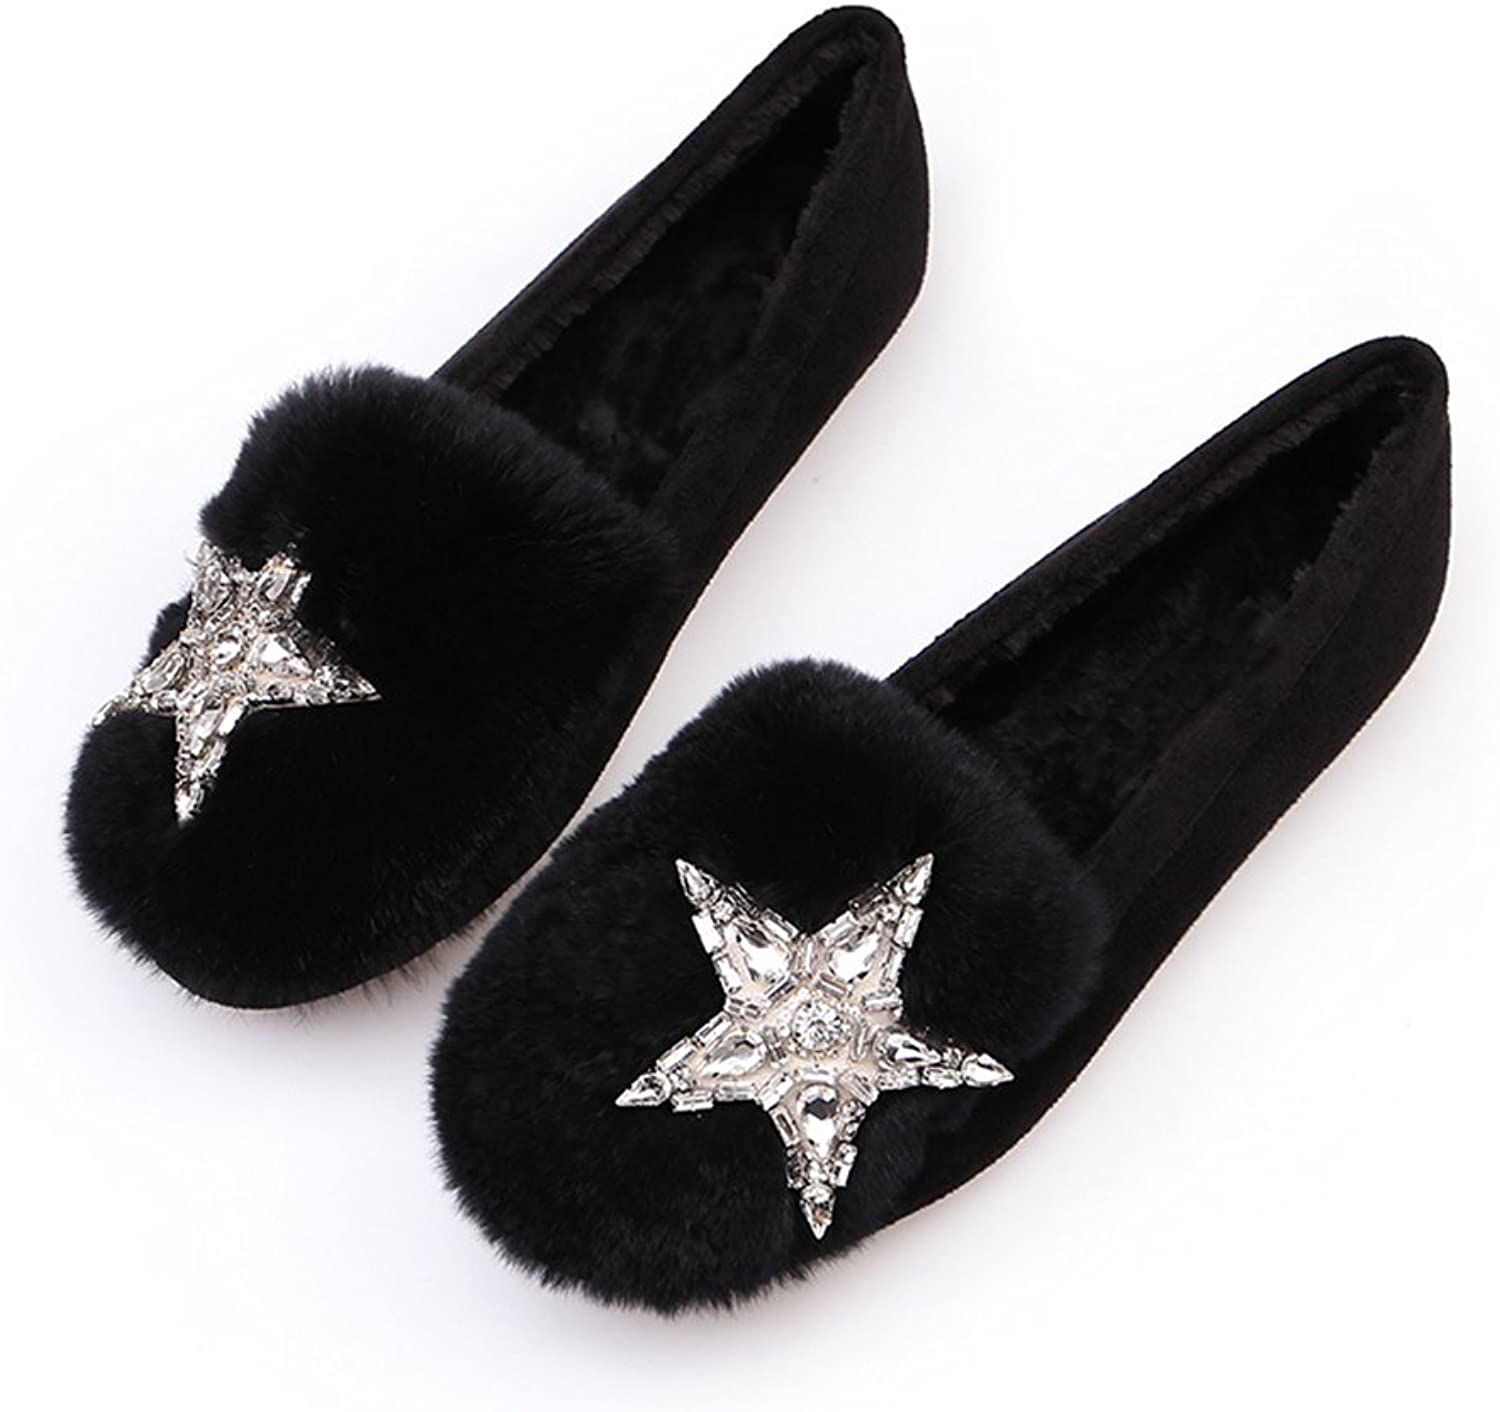 QZUnique Women Fluffy Flat Loafers shoes Soft Warm Moccasin Slippers with Satr Rhinestones Decoration